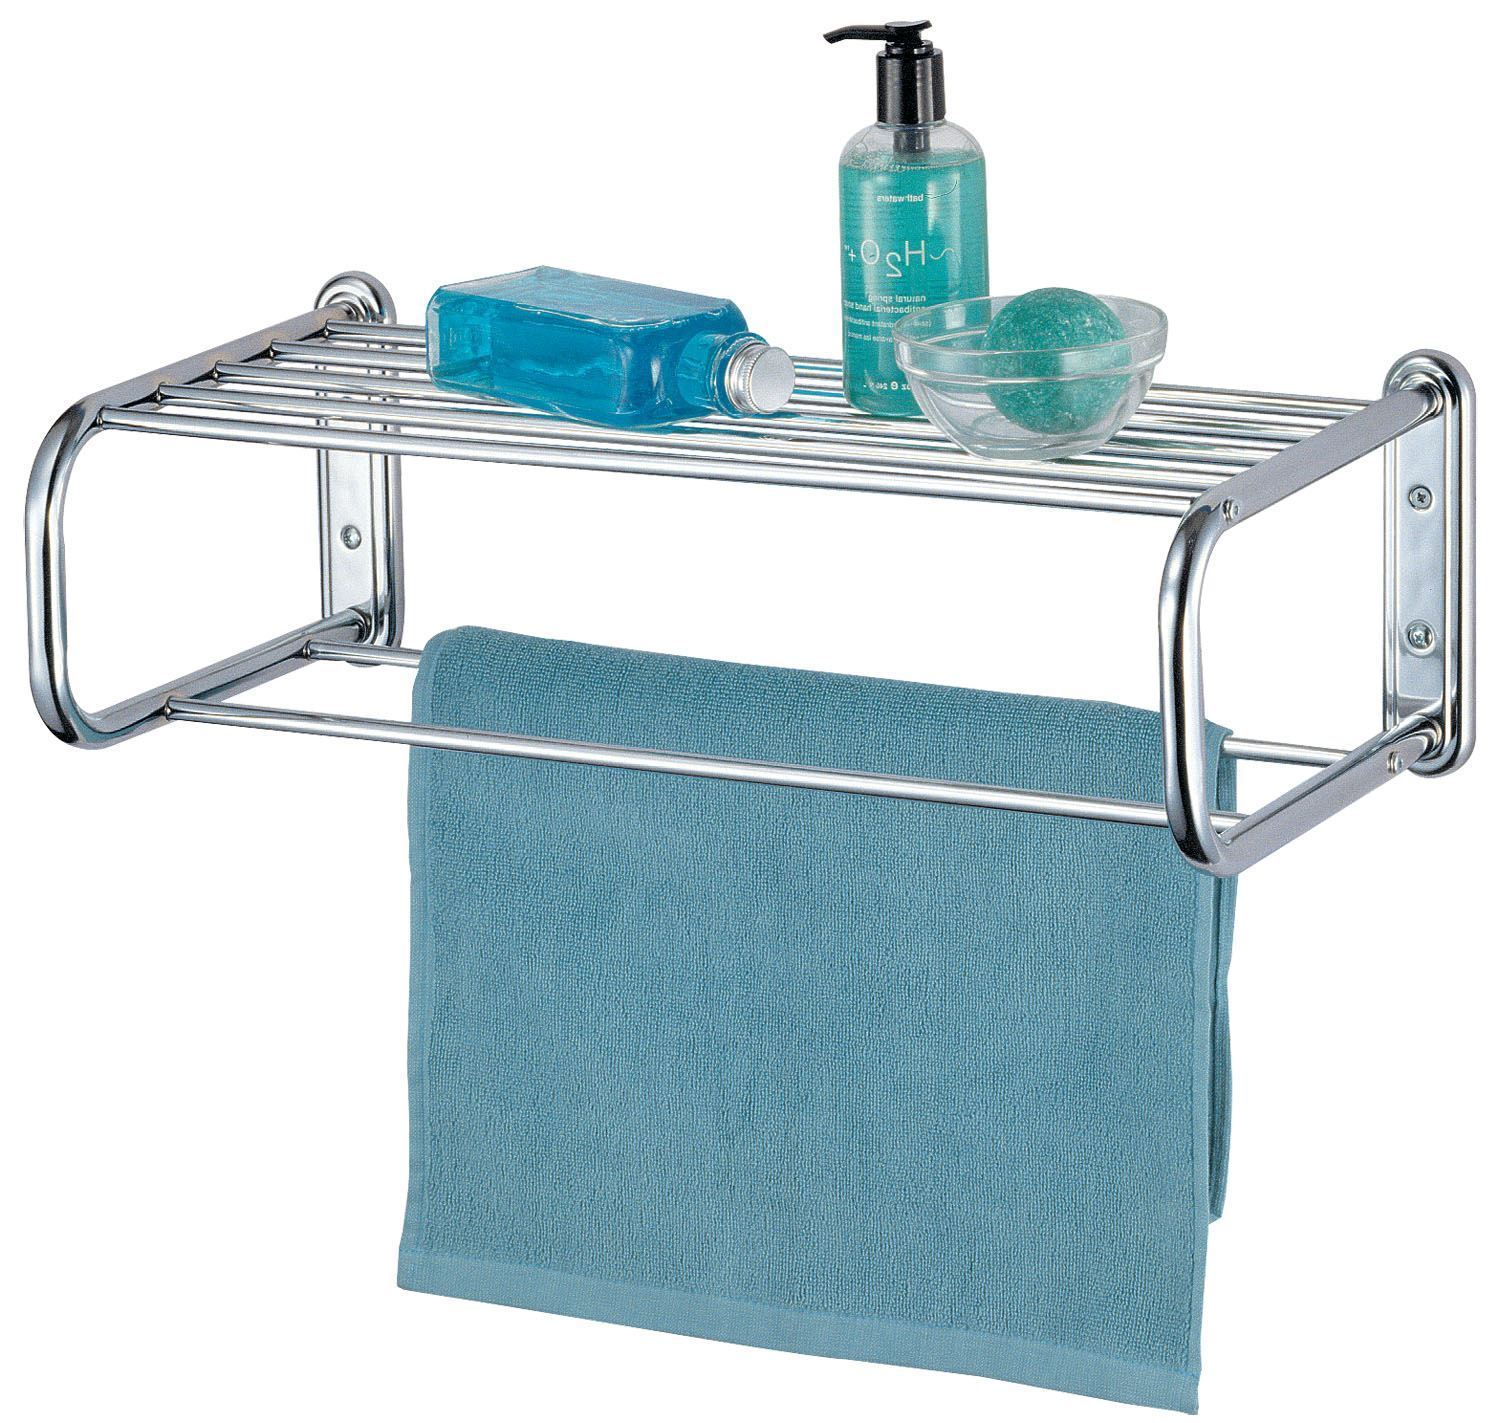 Chrome Towel Rack With Shelf - Lovequilts